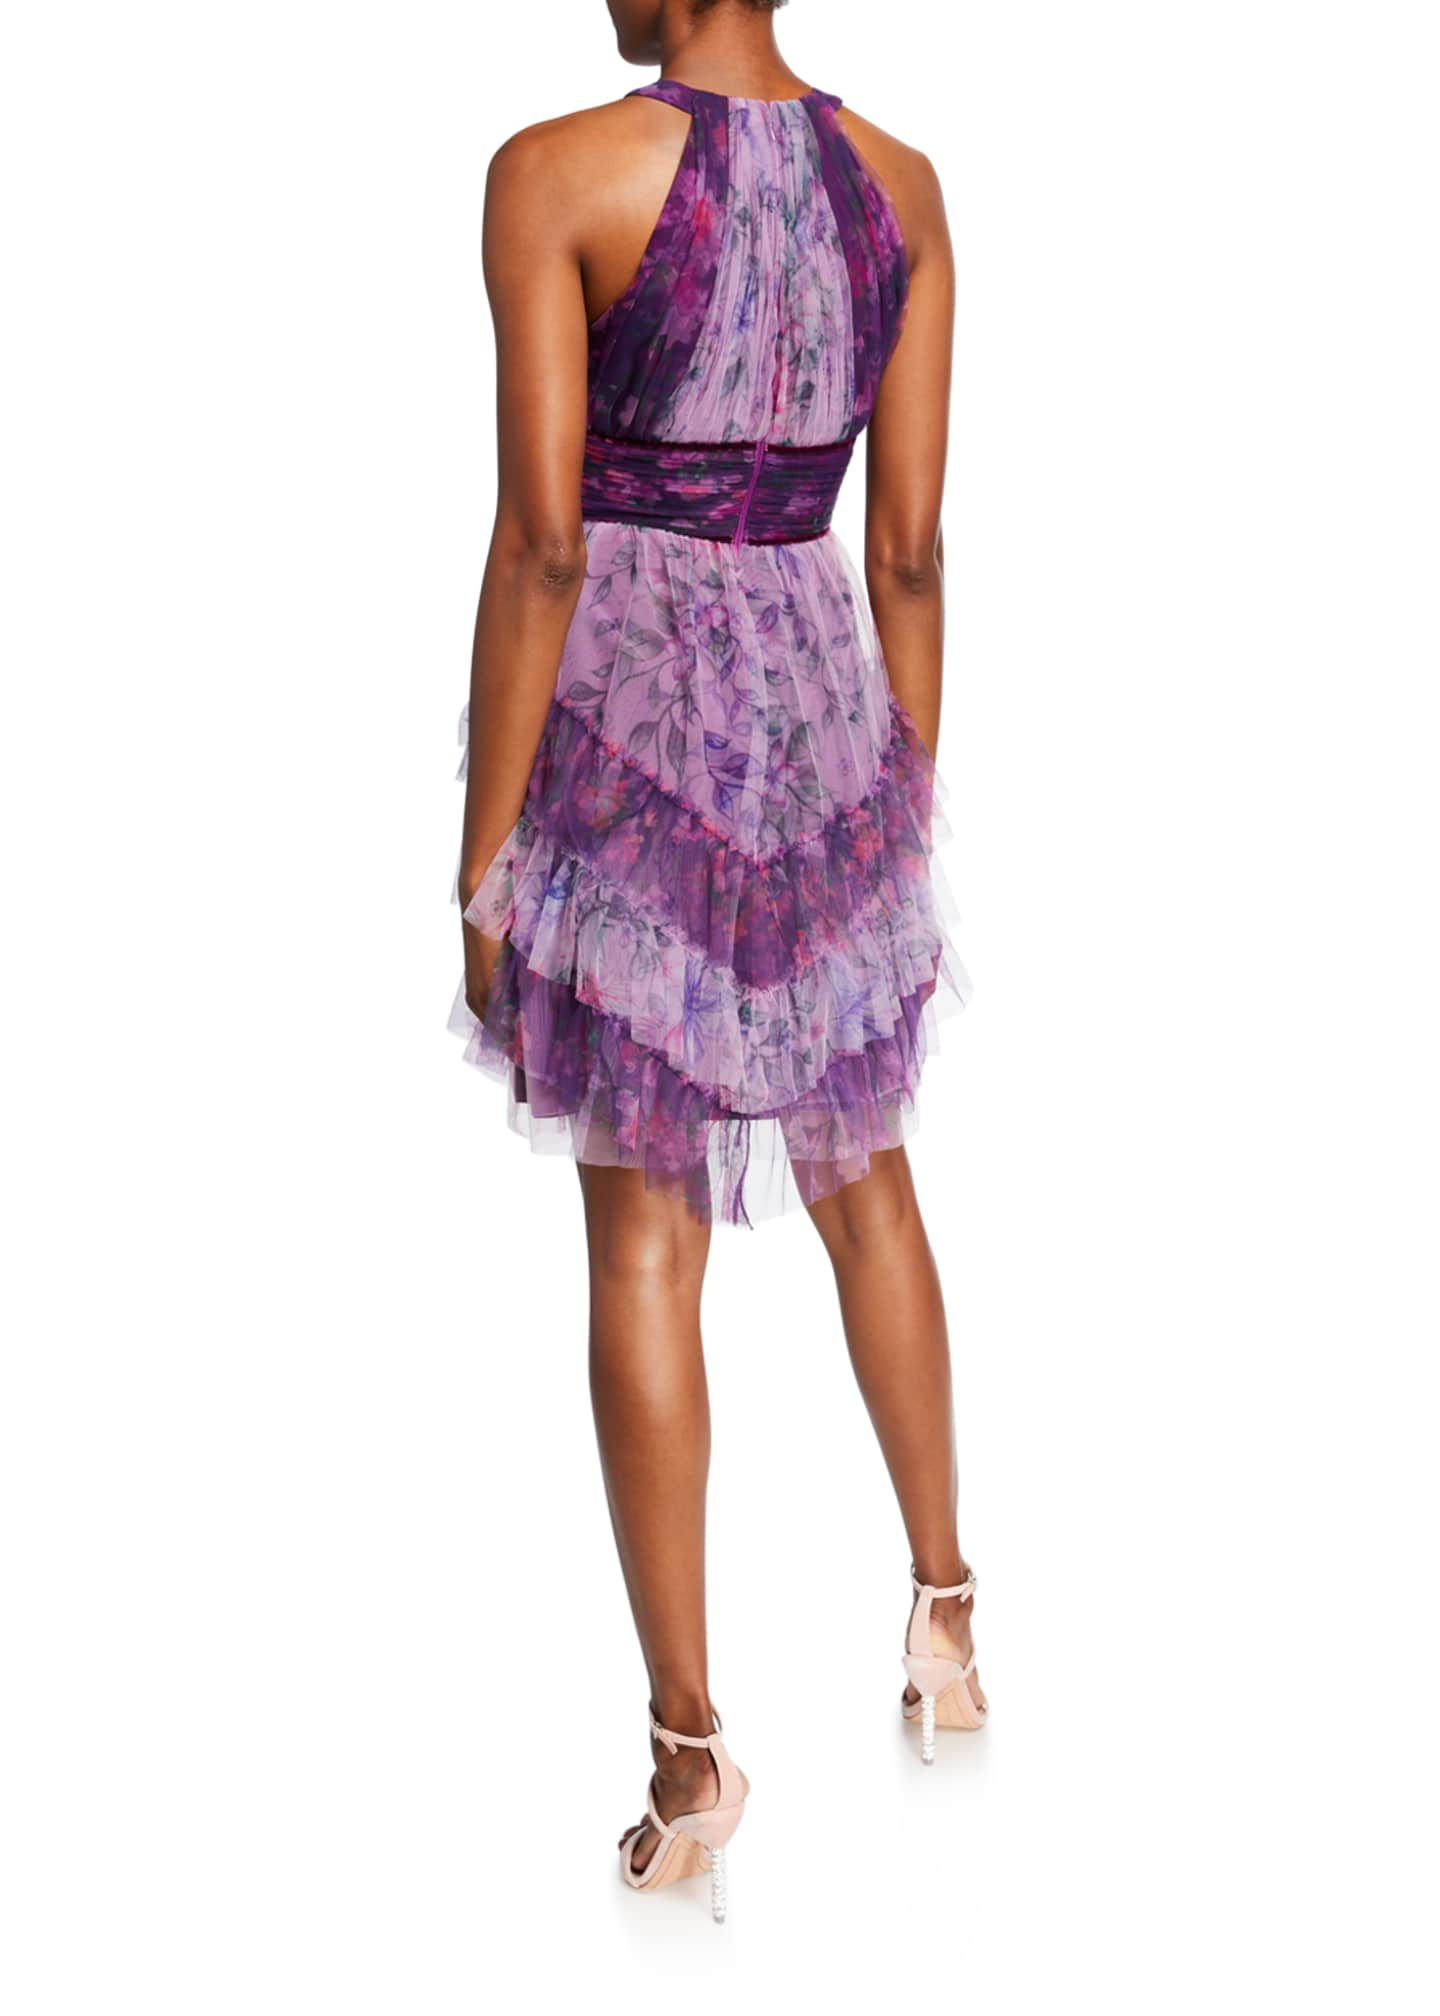 Image 2 of 2: Colorblocked Floral-Printed Tulle Dress with Ruffle Skirt Detailing